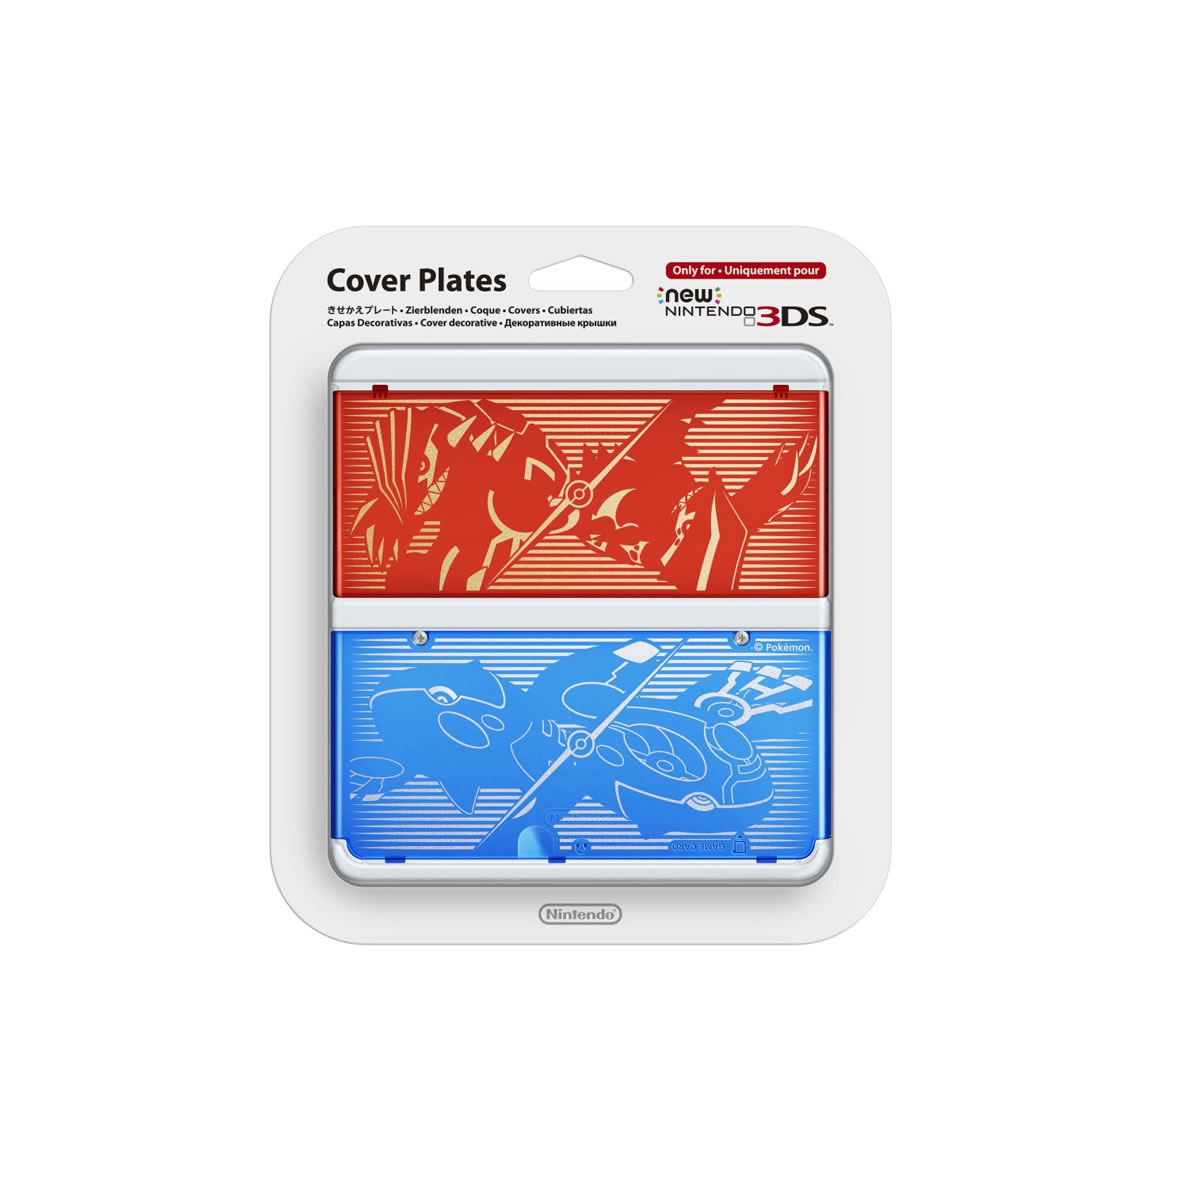 NEW NINTENDO 3DS COVERPLATE 009 Pokemon ORAS (New 3DS)